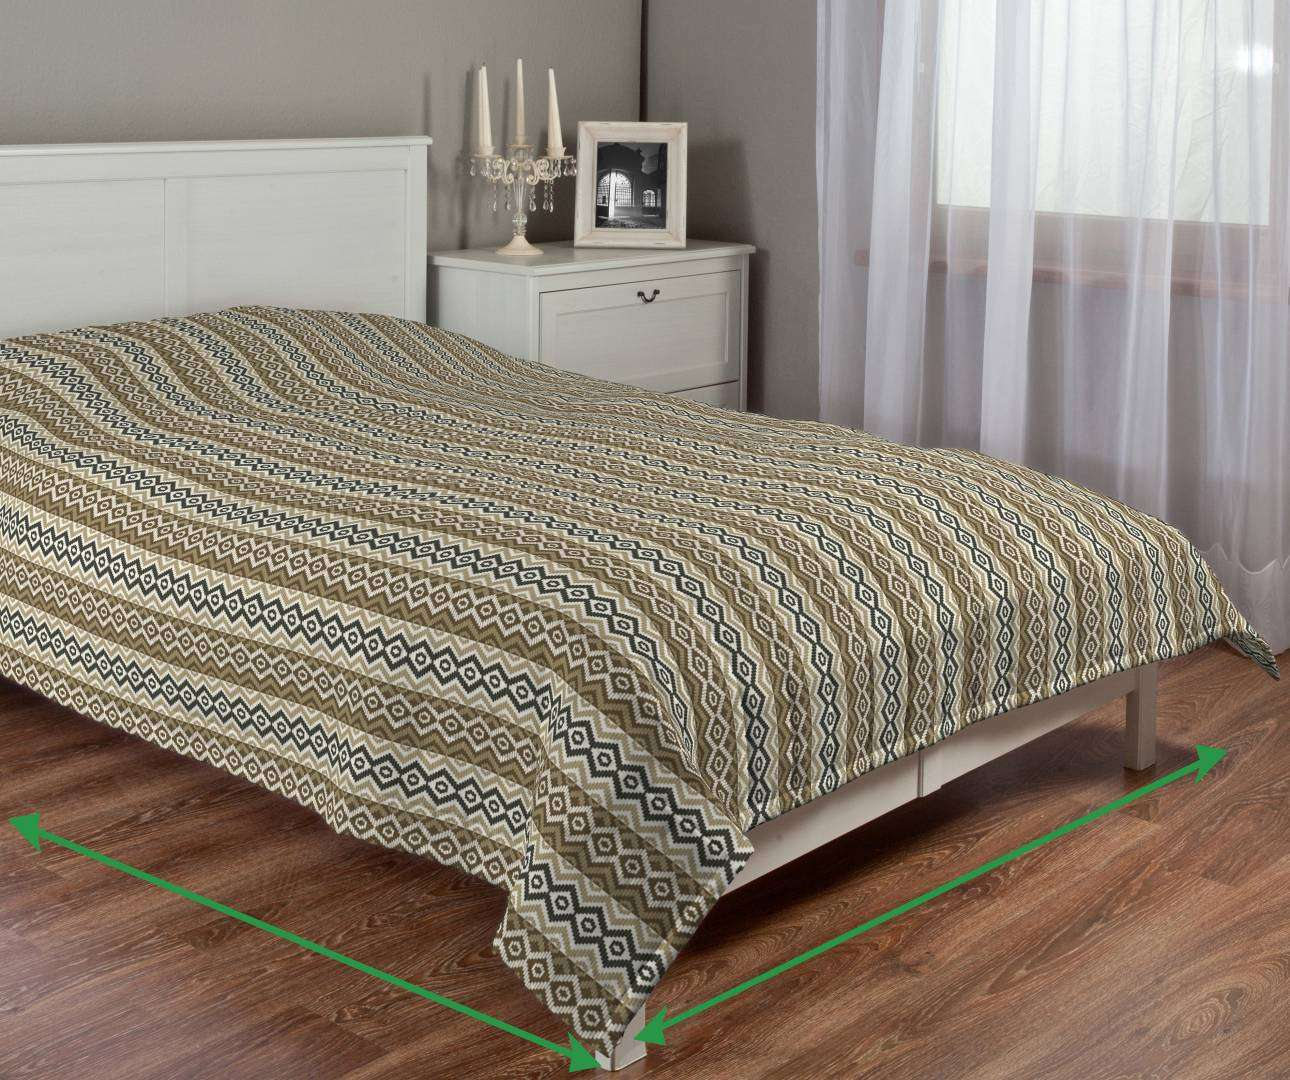 Quilted throw (vertical quilt pattern) in collection SALE, fabric: 142-08